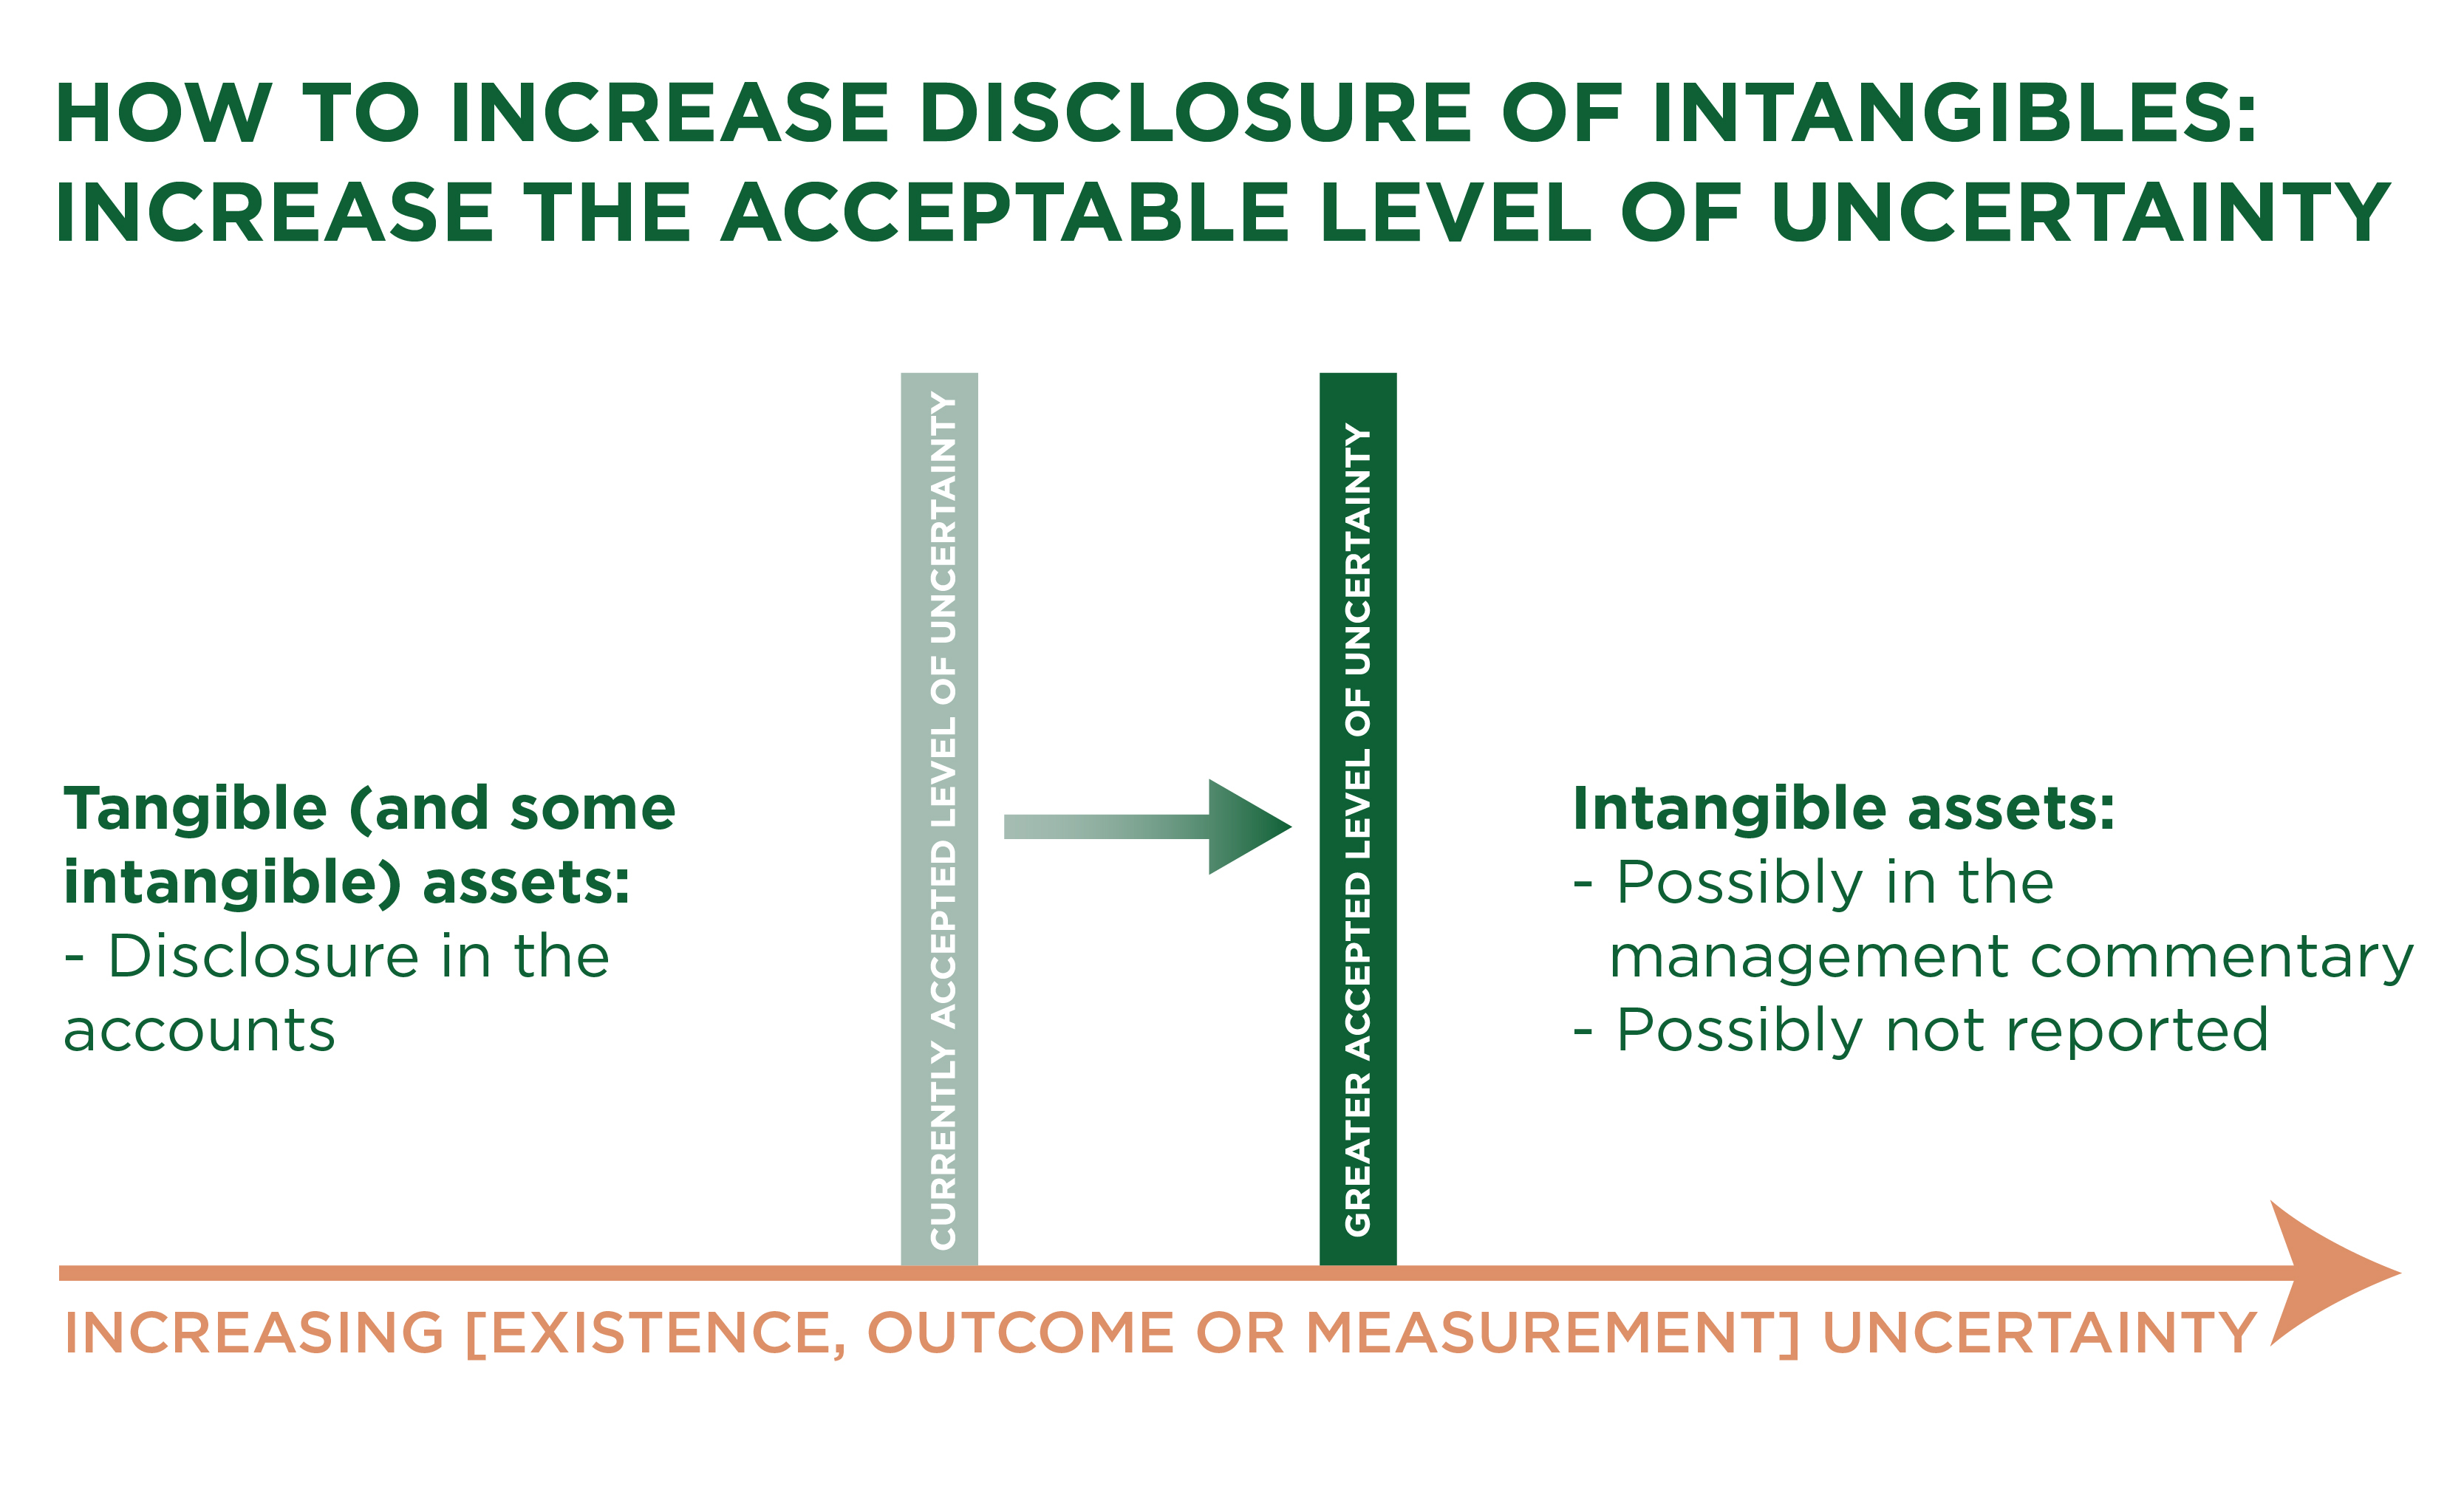 Jeremy Nicholls - Increasing disclosure of intangible assets